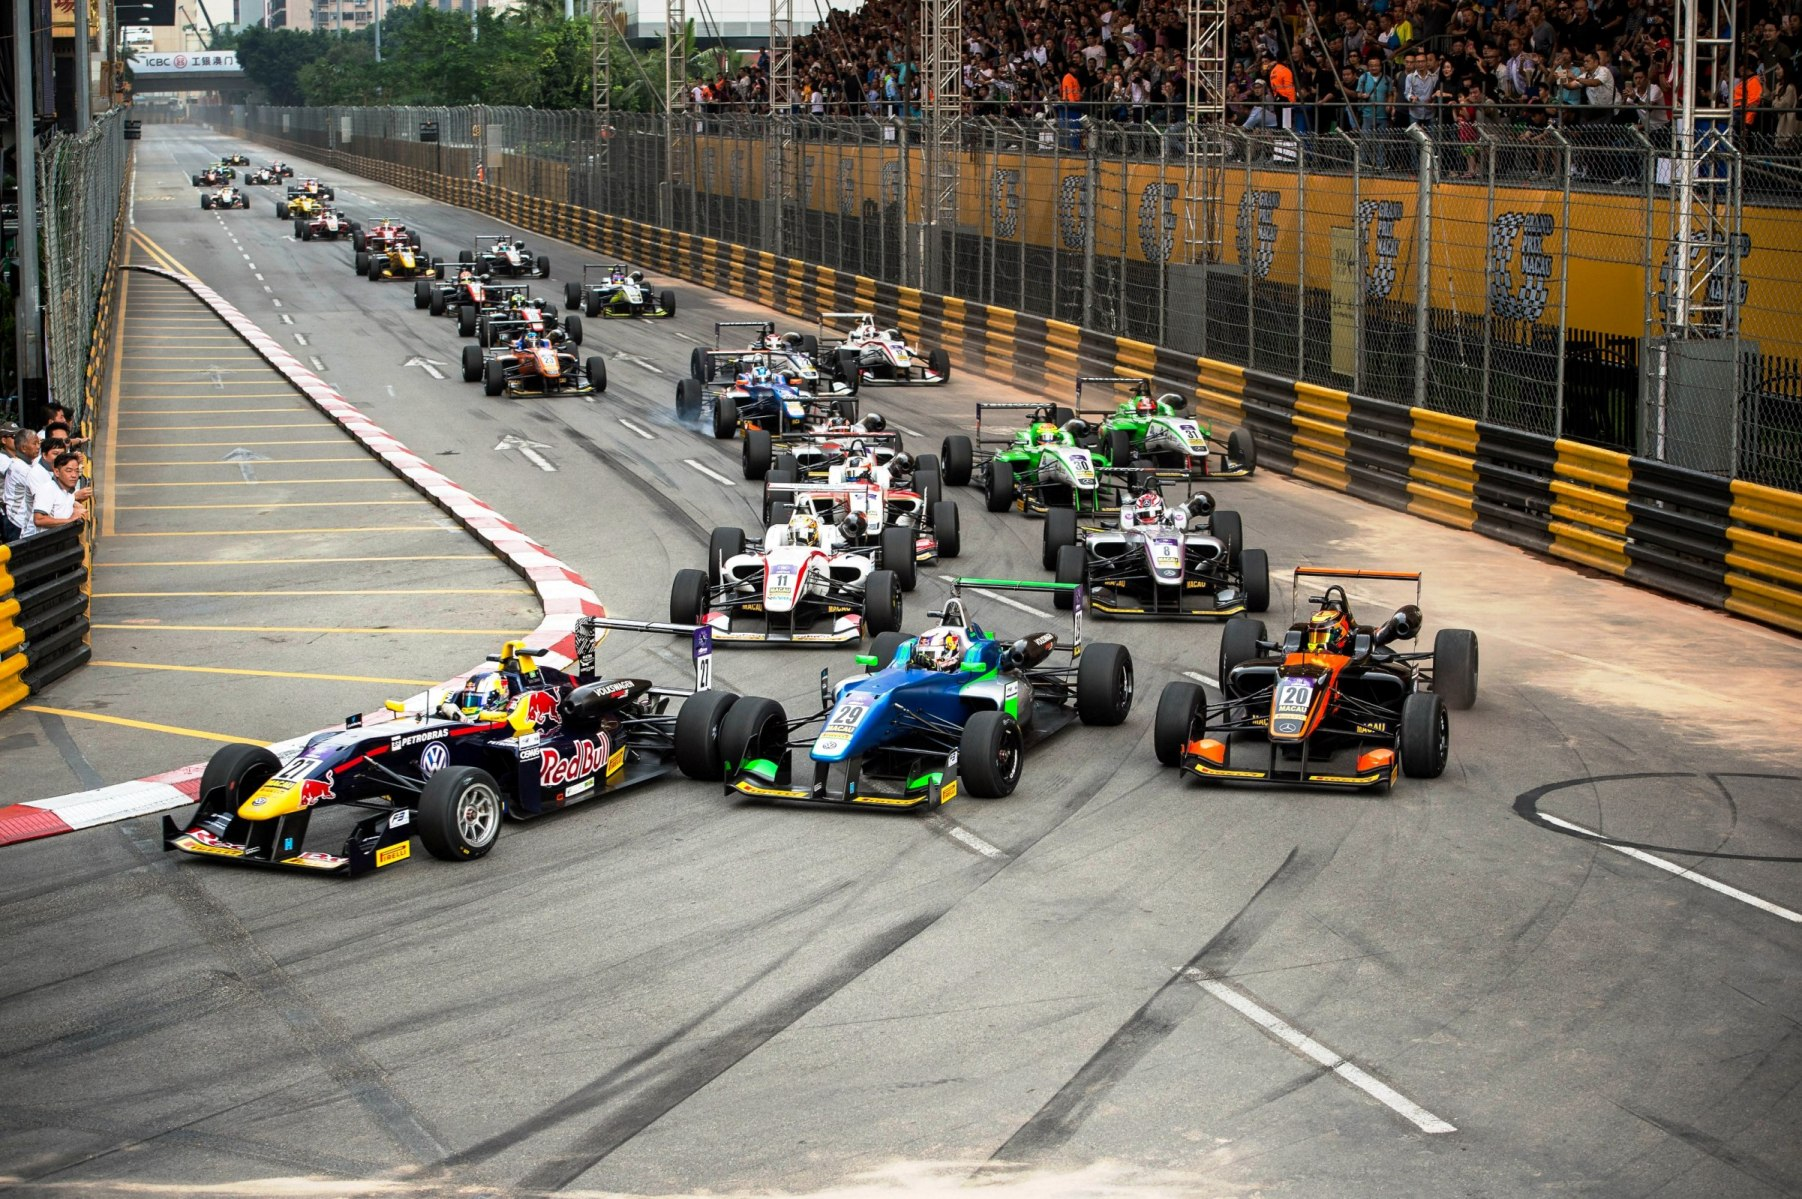 Image from Macao Grand Prix